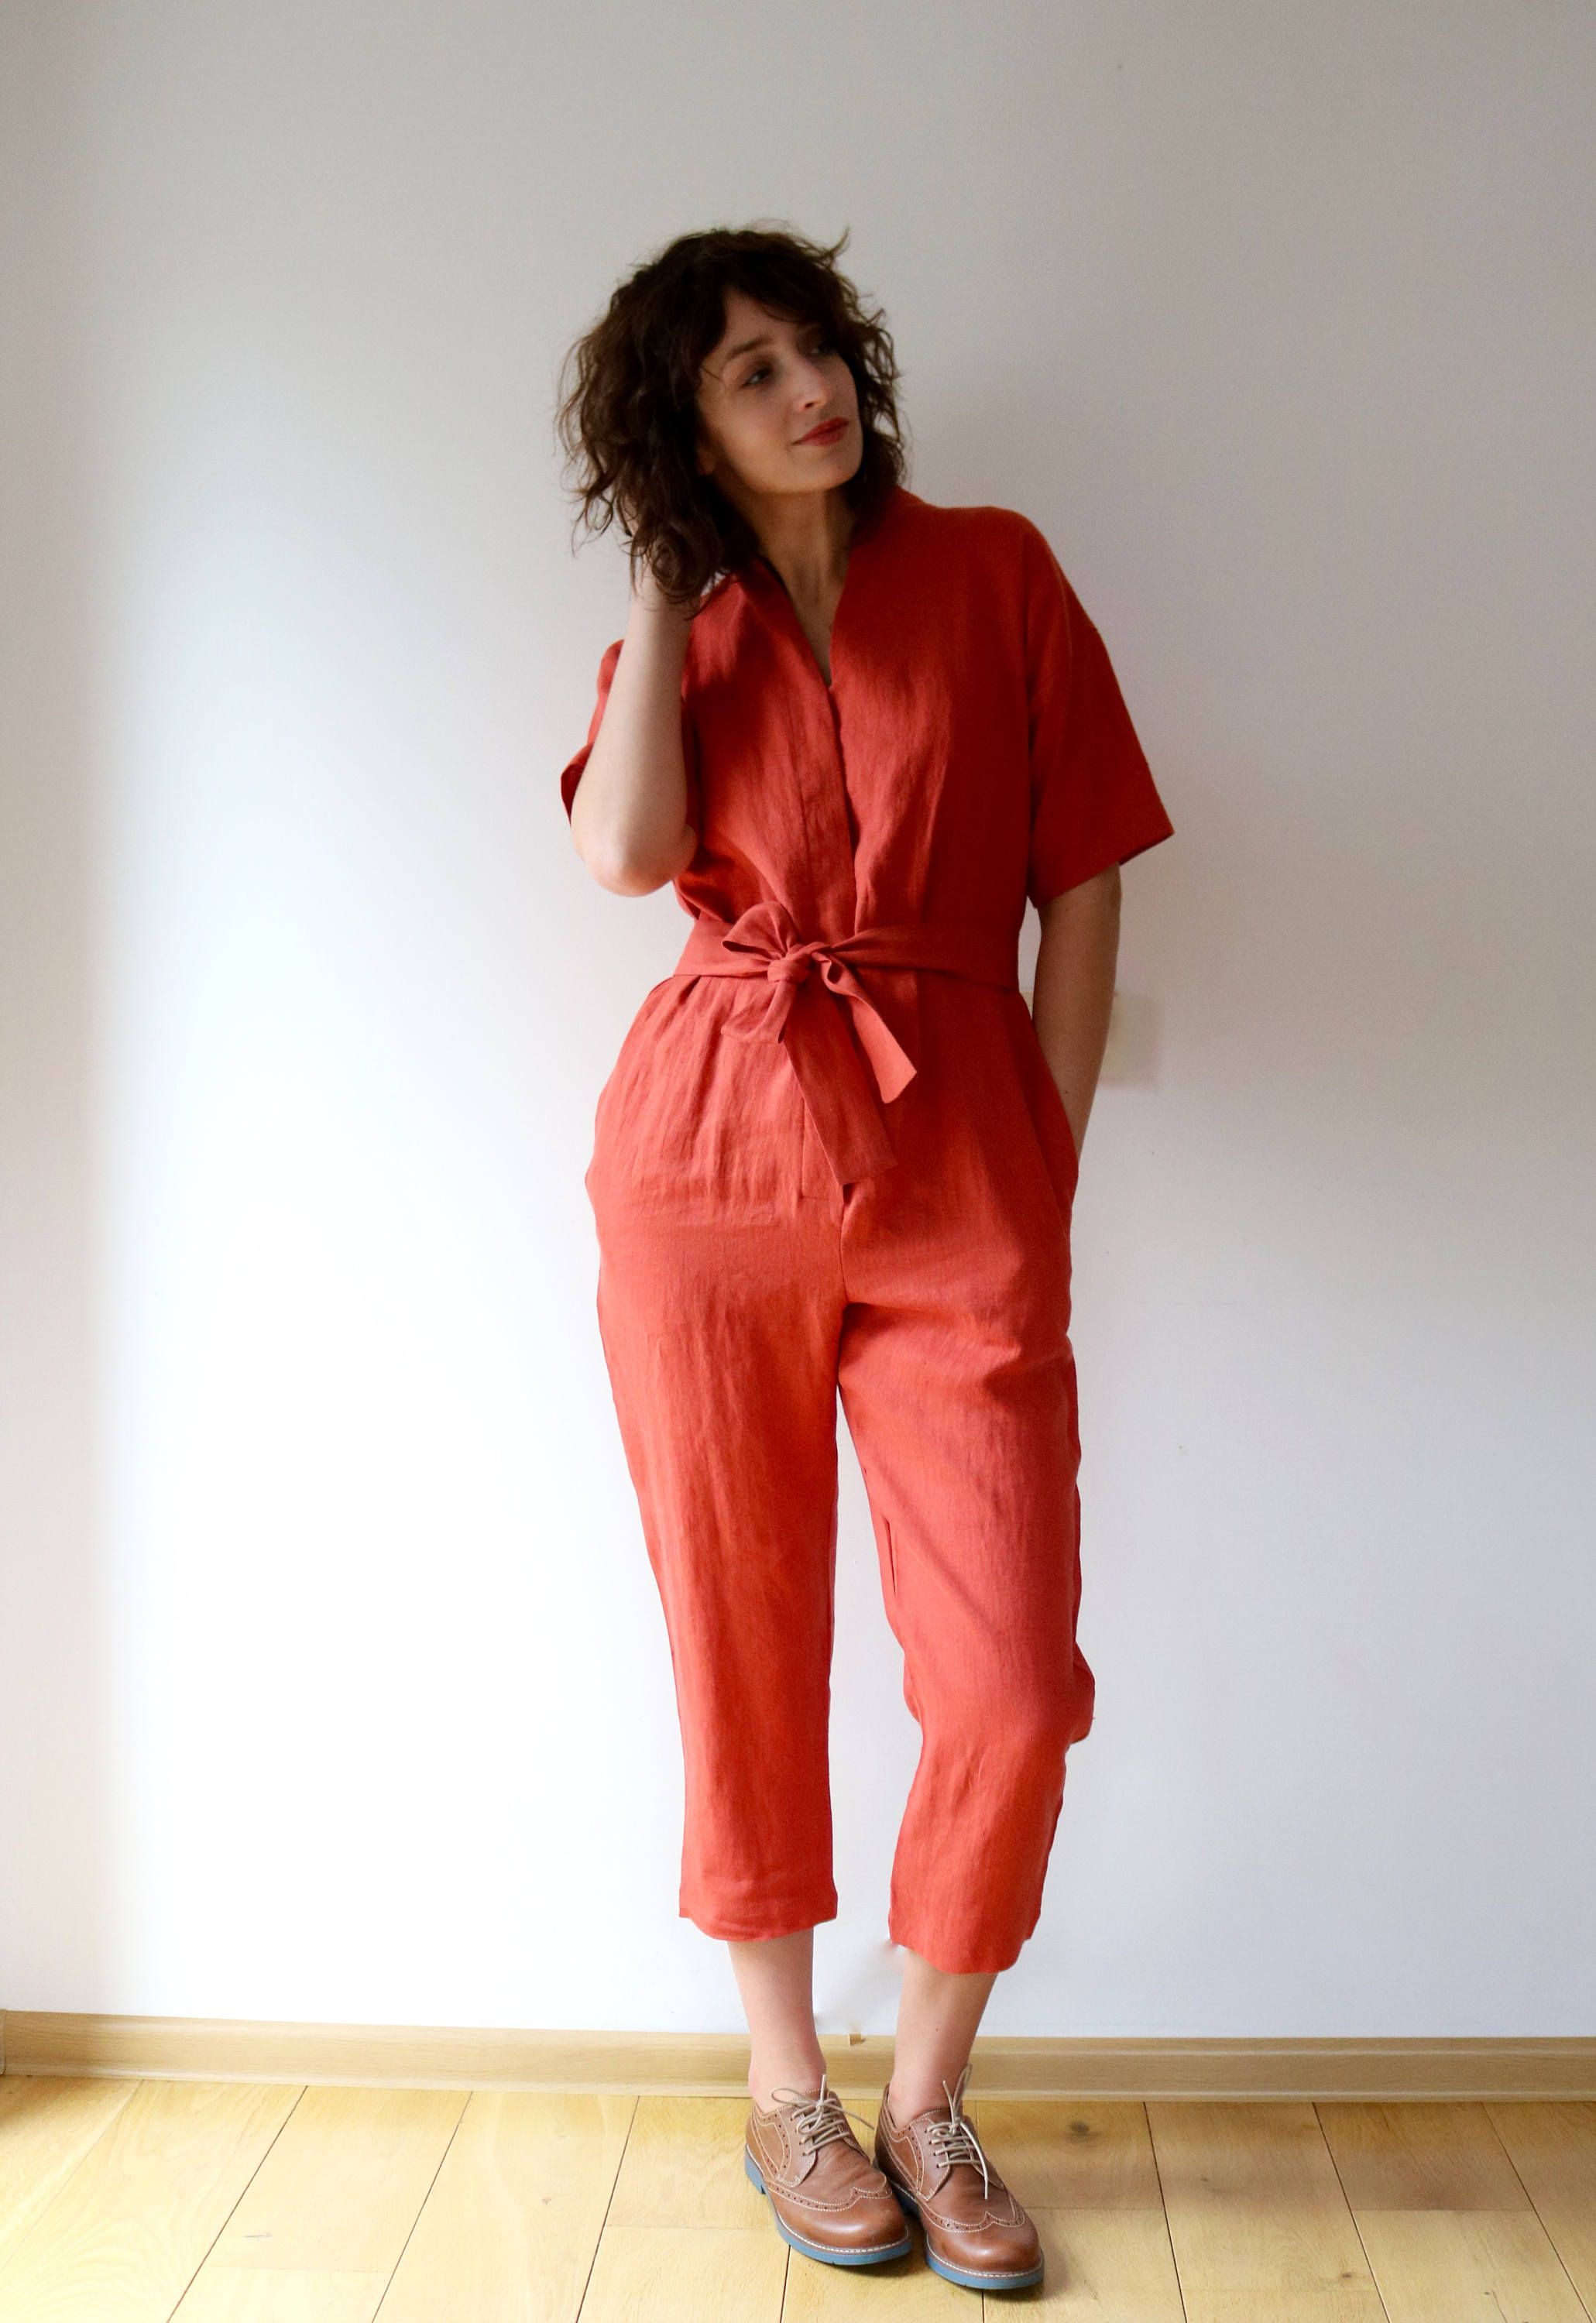 719271254a6 Linen Jumpsuit - Linen Kimono Jumpsuit - Burnt Orange Linen Jumpsuit -  Short Sleeve Romper - Burnt Orange Linen Overall - Handmade by OFFON by  OffOn on Etsy